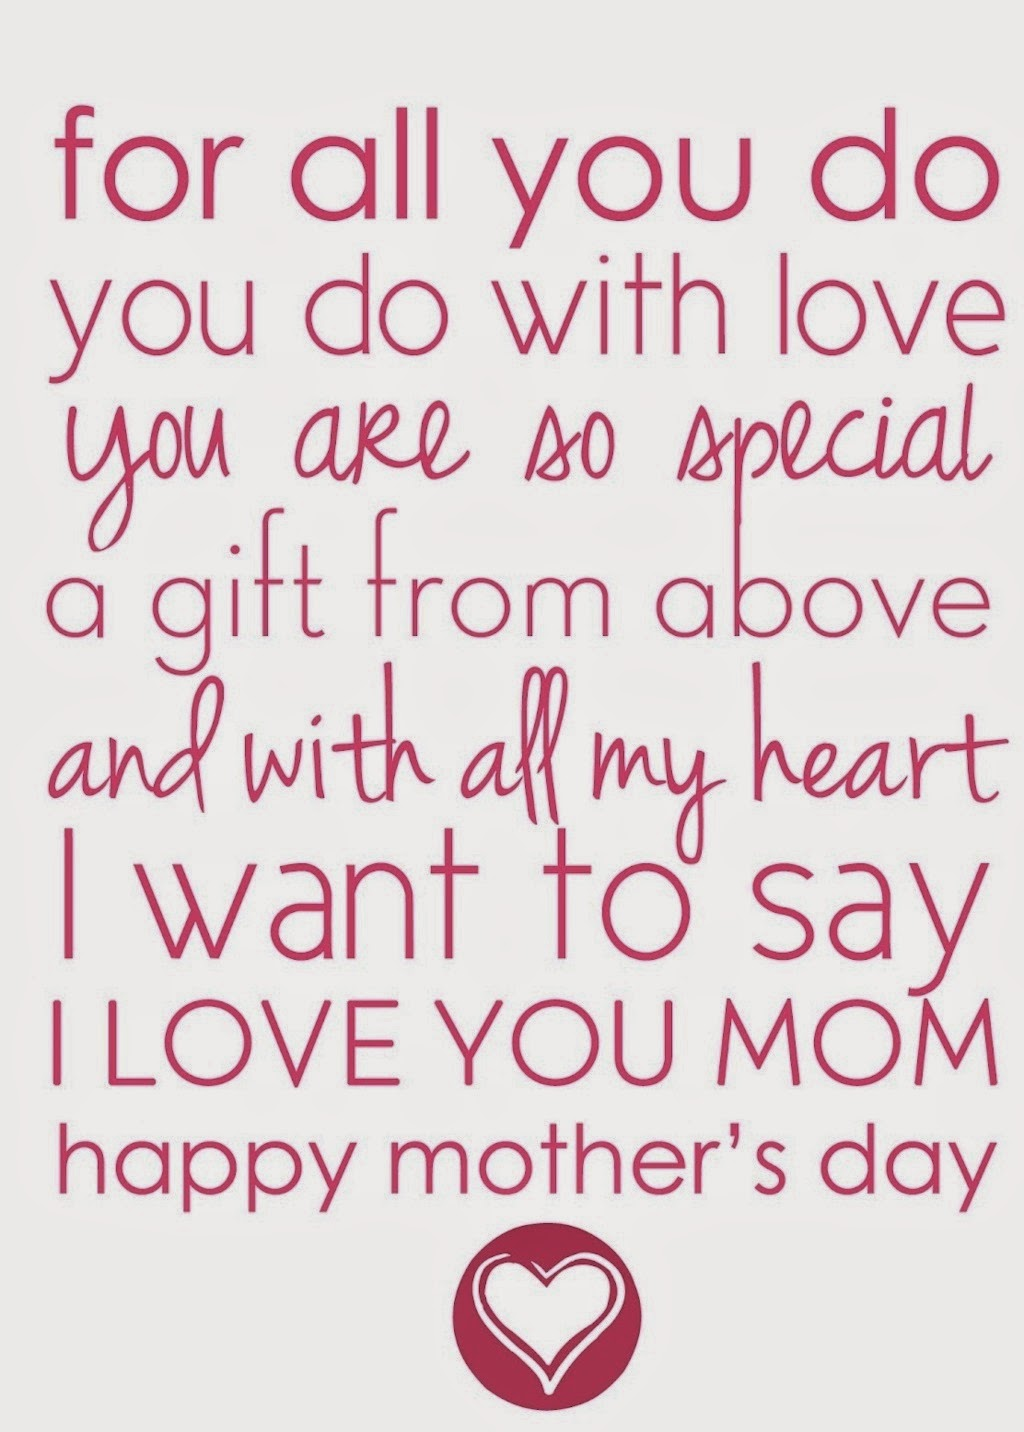 mothers day wallpapers hd with messages